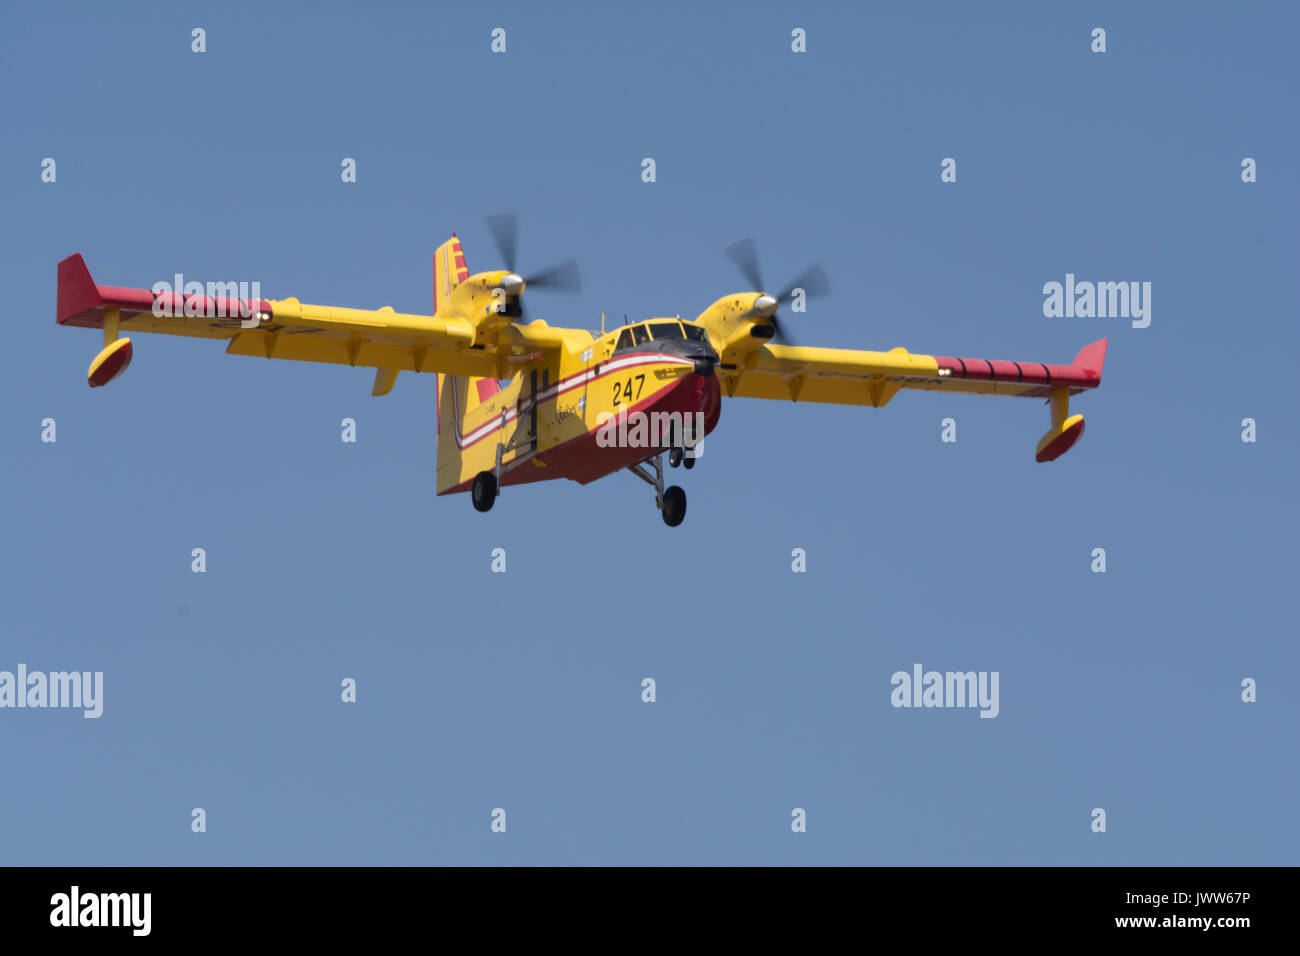 Van Nuys Airport, CA, USA. 13th Aug, 2017. Supper Scopper 247 from Canada arrived back in Los Angeles County for support of the busy wildfire season. Credit: Chester Brown/Alamy Live News Stock Photo